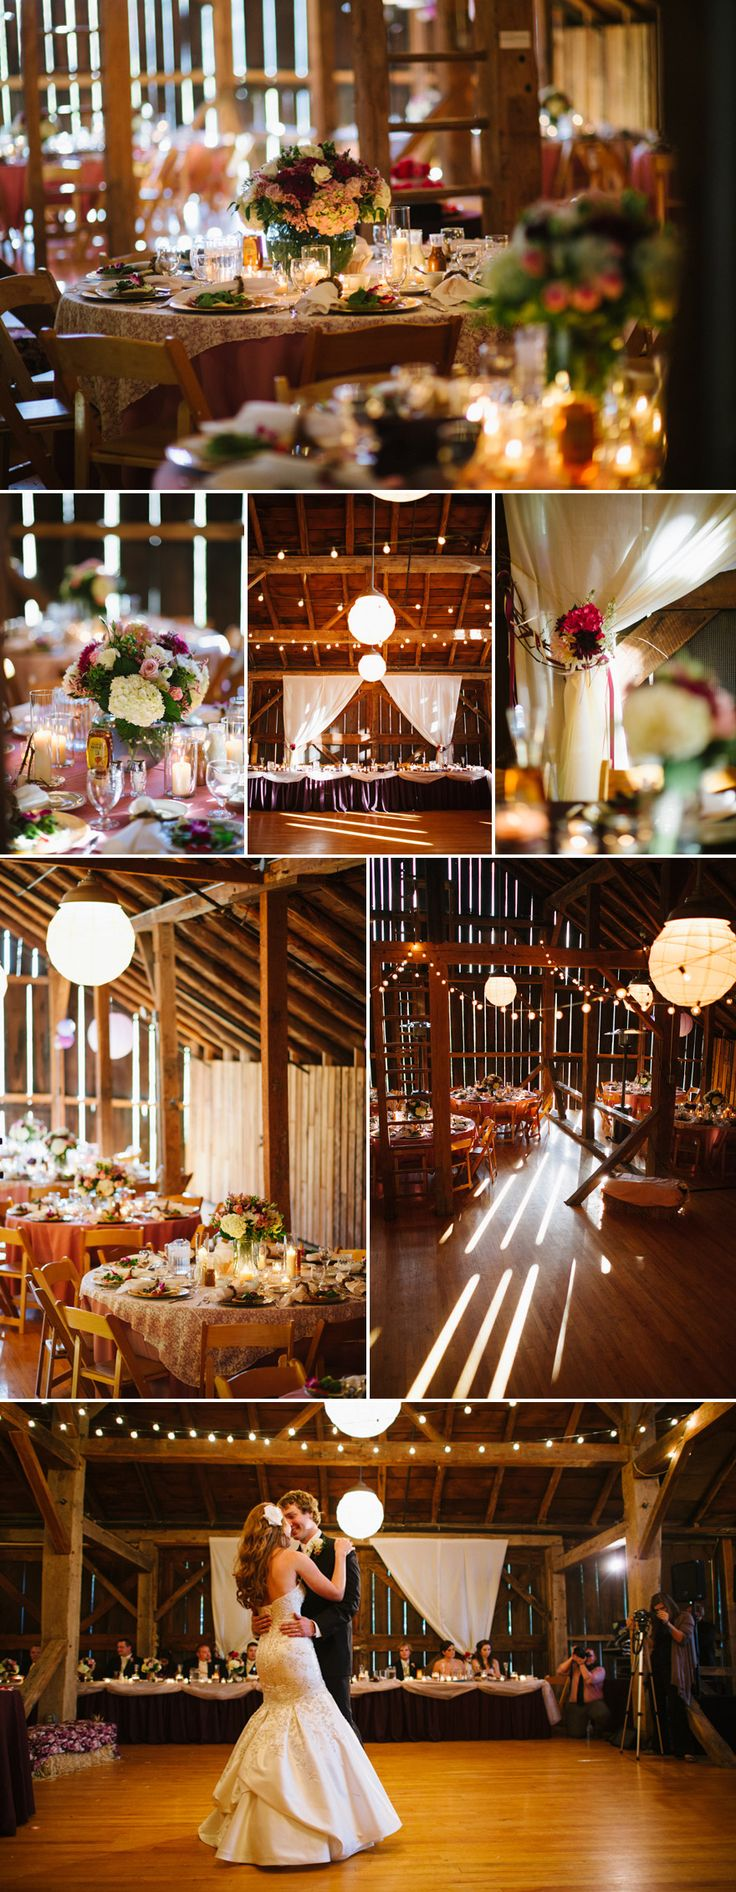 62 best wedding venues pittsburgh images on pinterest wedding this is why i love pittsburgh this junglespirit Image collections